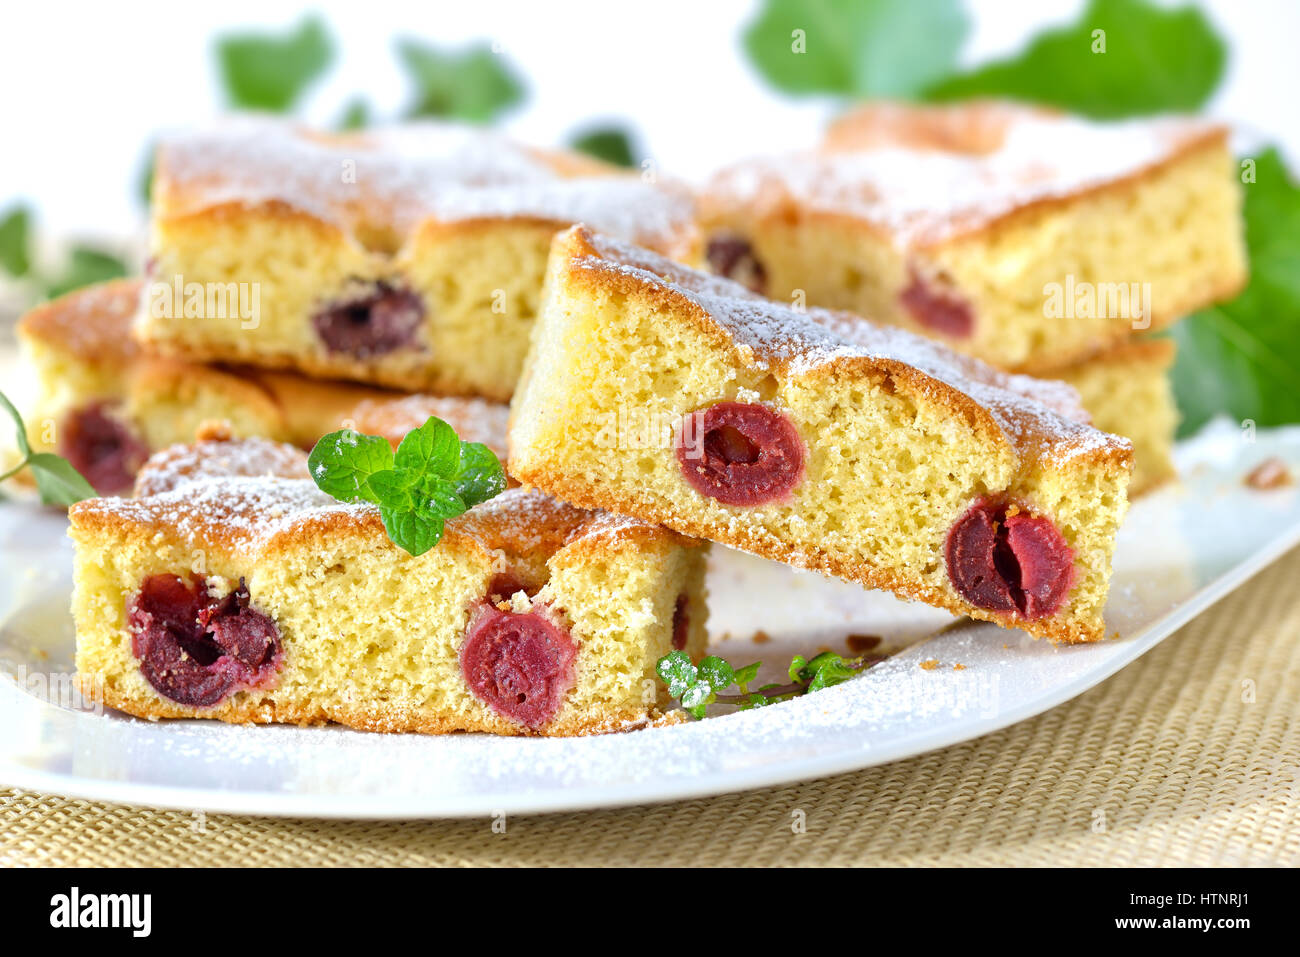 Delicious cuts of cherry cake with icing sugar and mint leaves served on a white plate - Stock Image